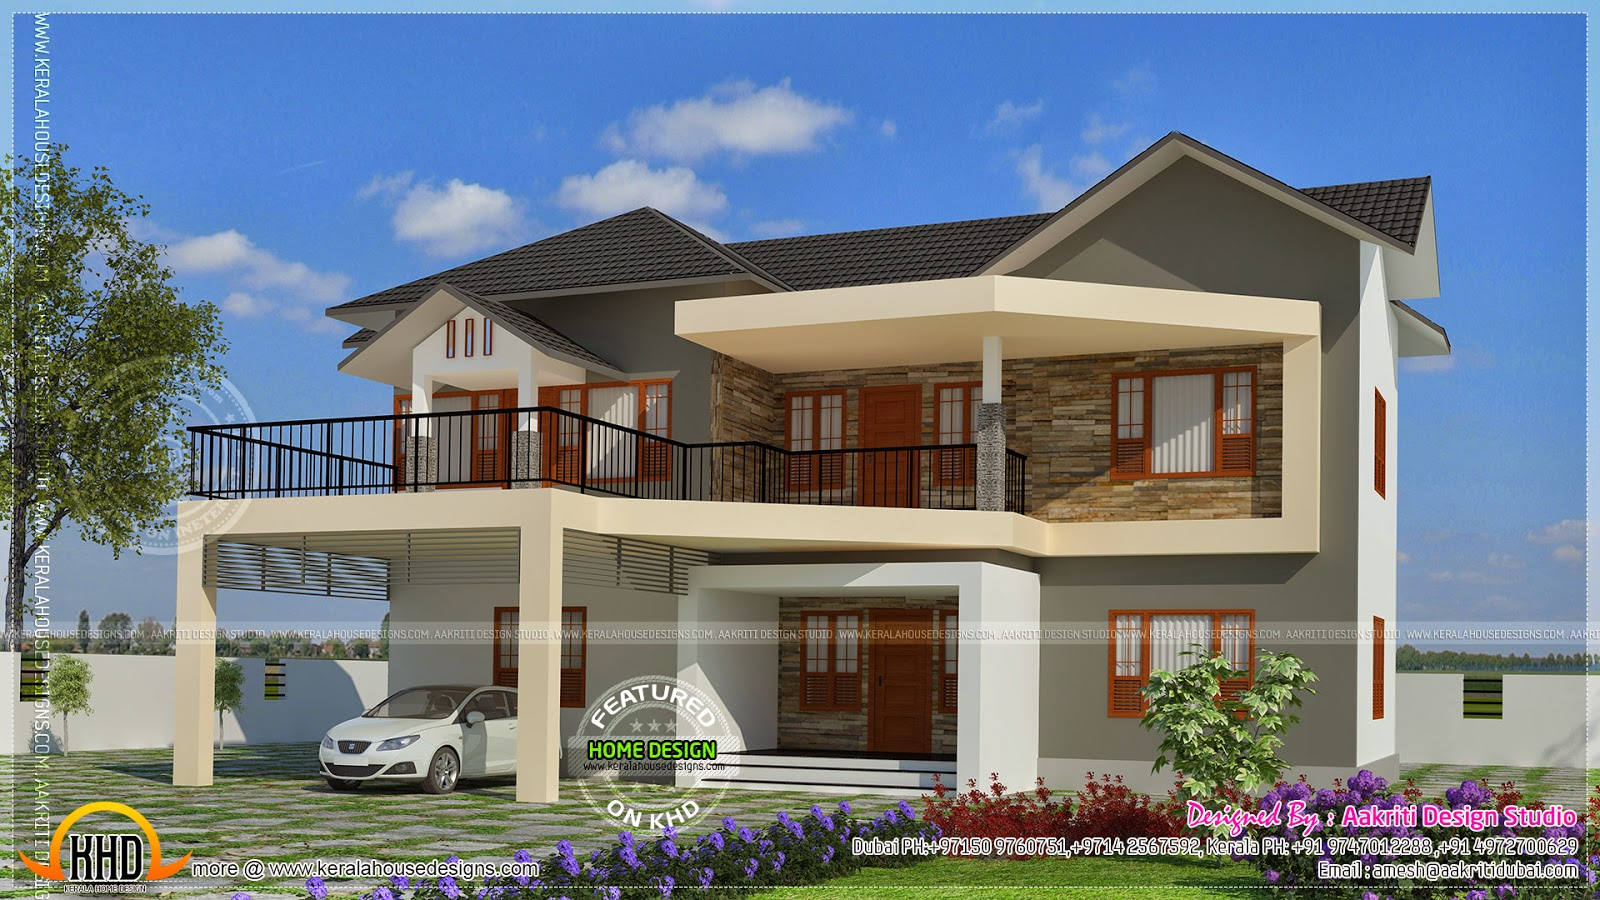 Elegant villa exterior kerala home design and floor plans Elegant farmhouse plans